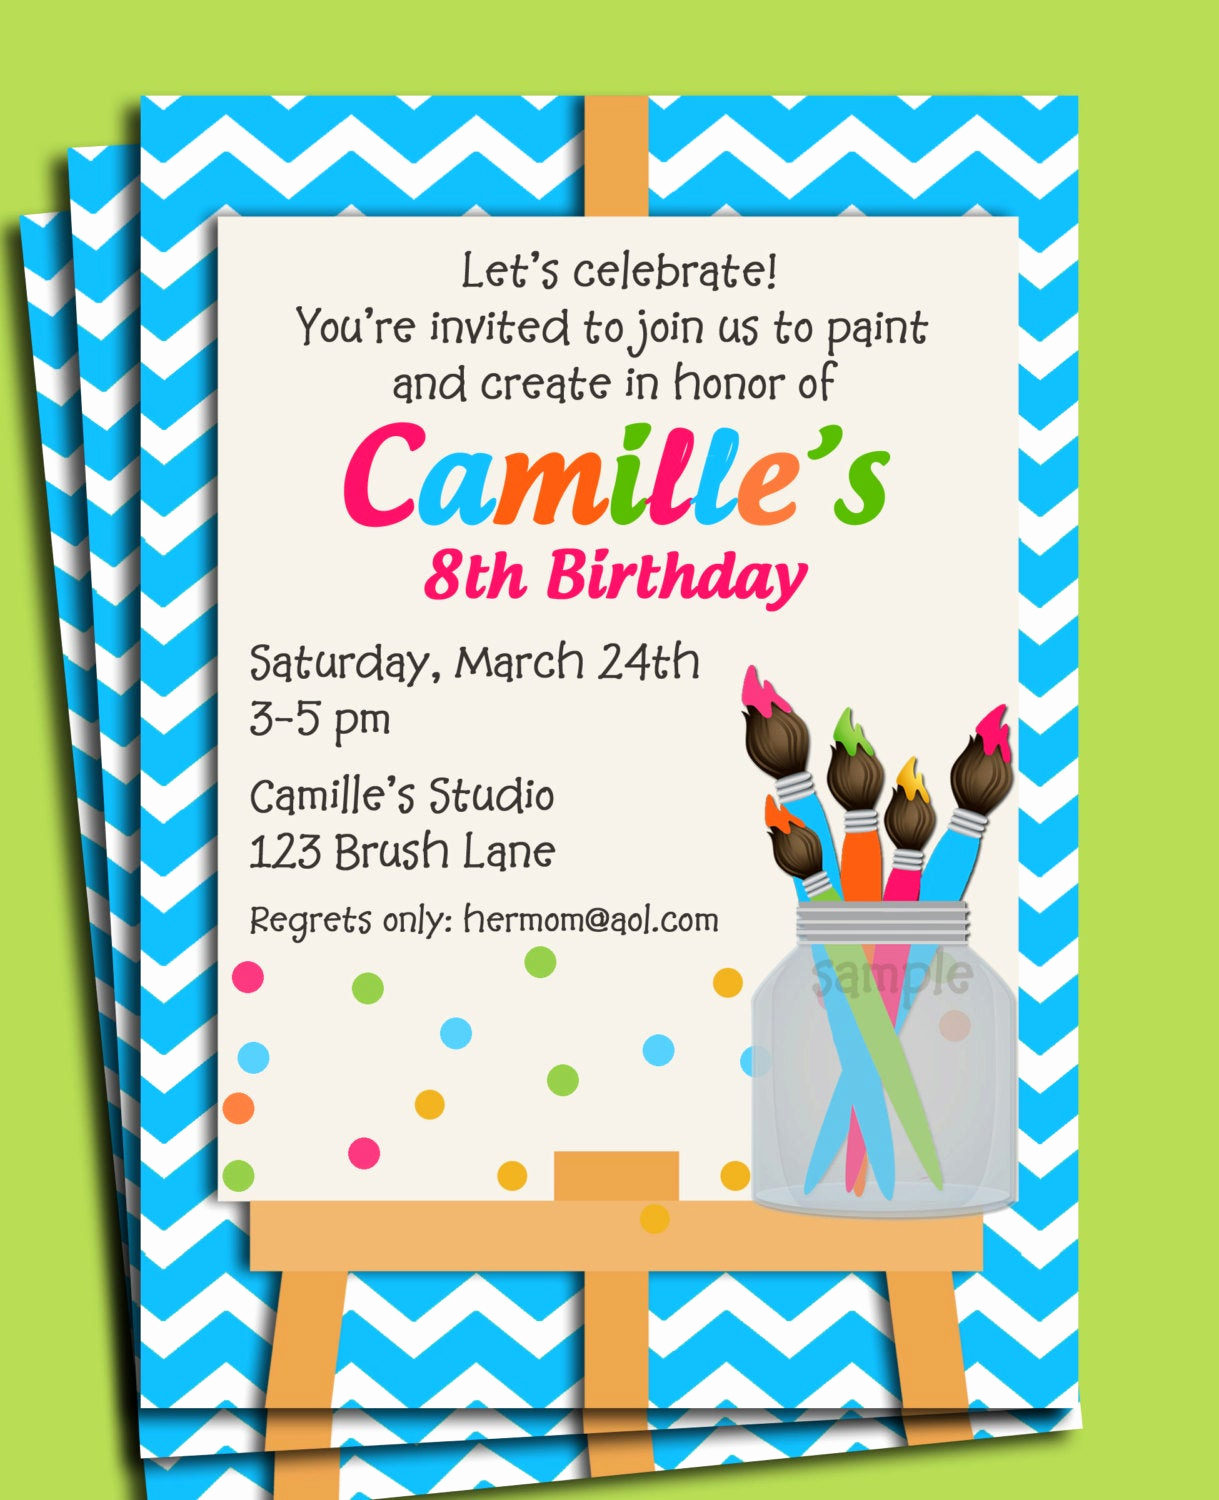 Paint Party Invitation Wording Unique Painting Art Party Birthday Invitation Printable or Printed